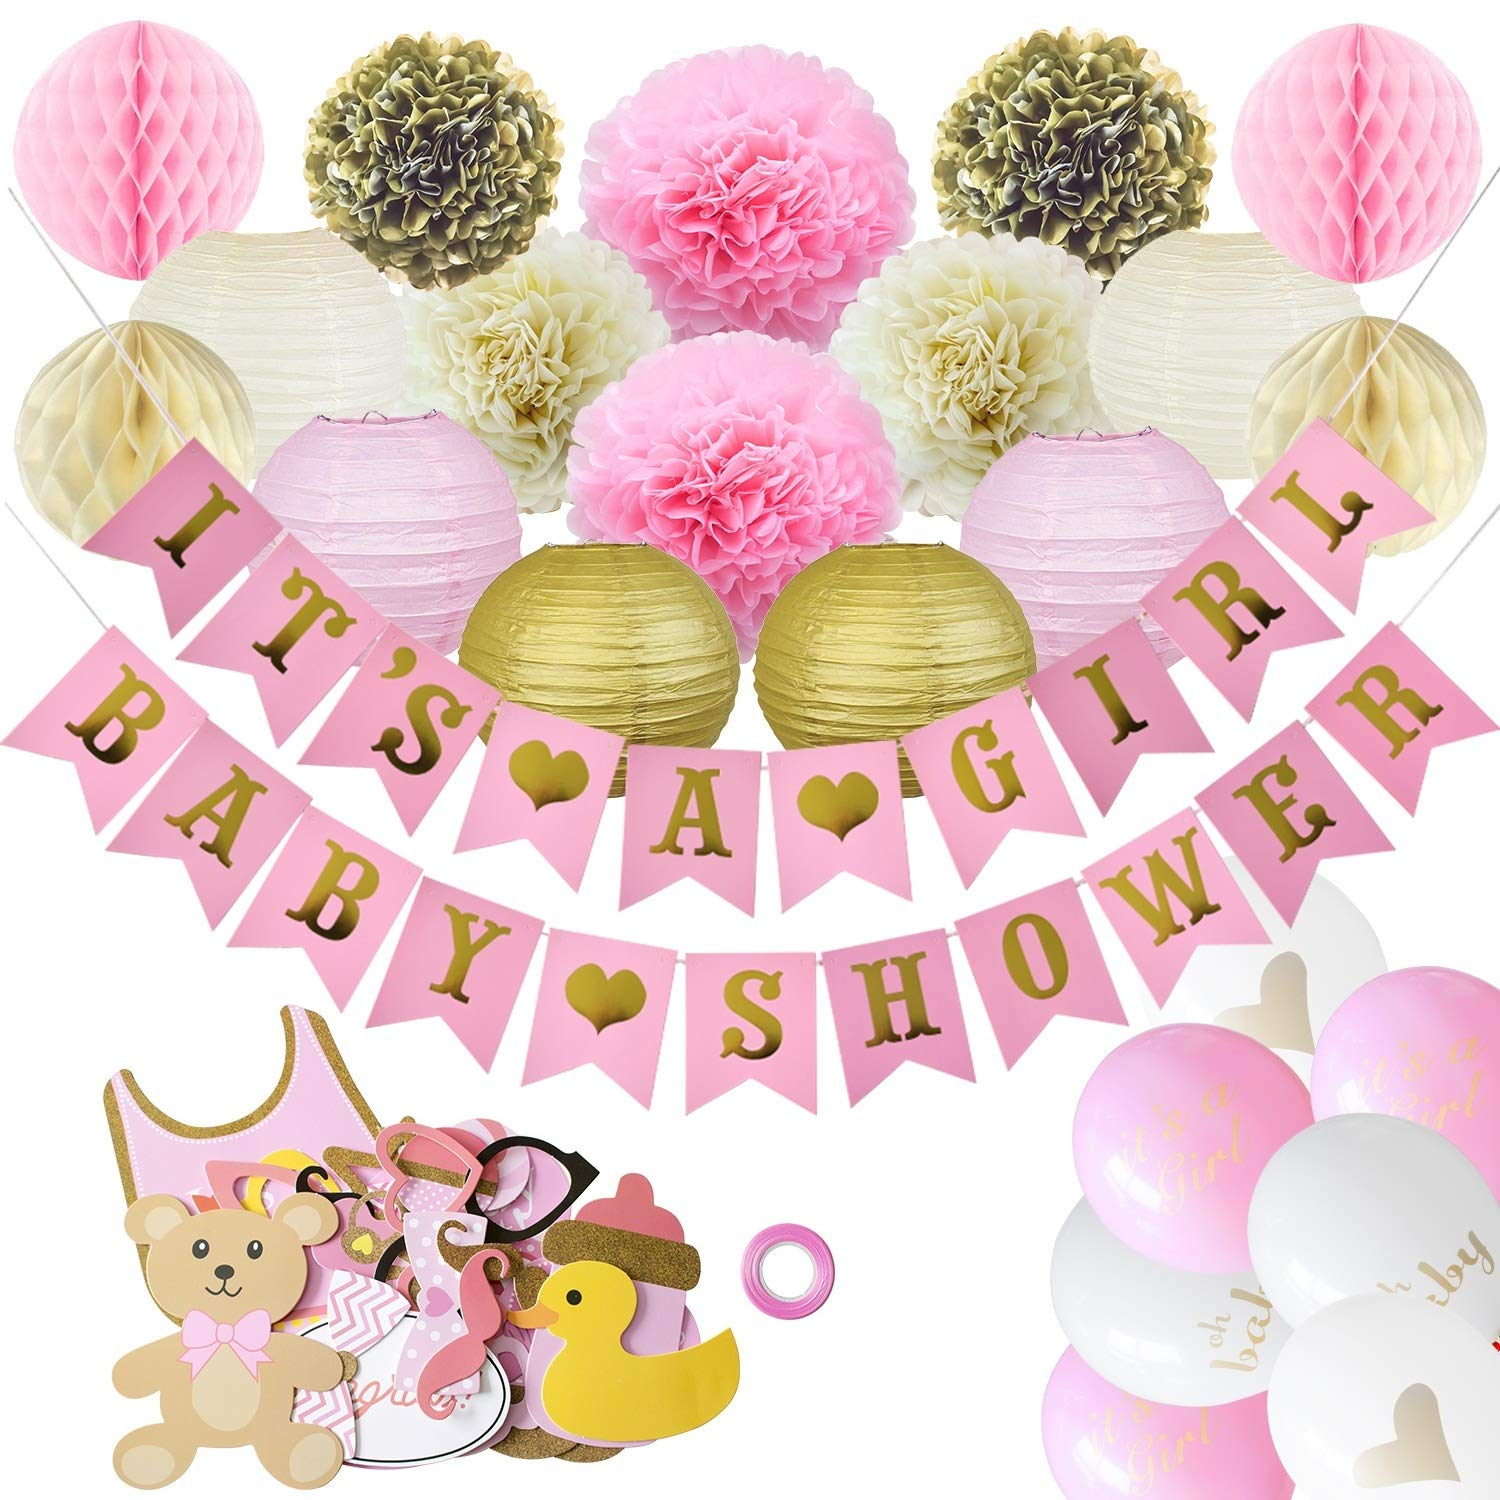 Golden Baby Shower Decorations for Girl (80PCS)